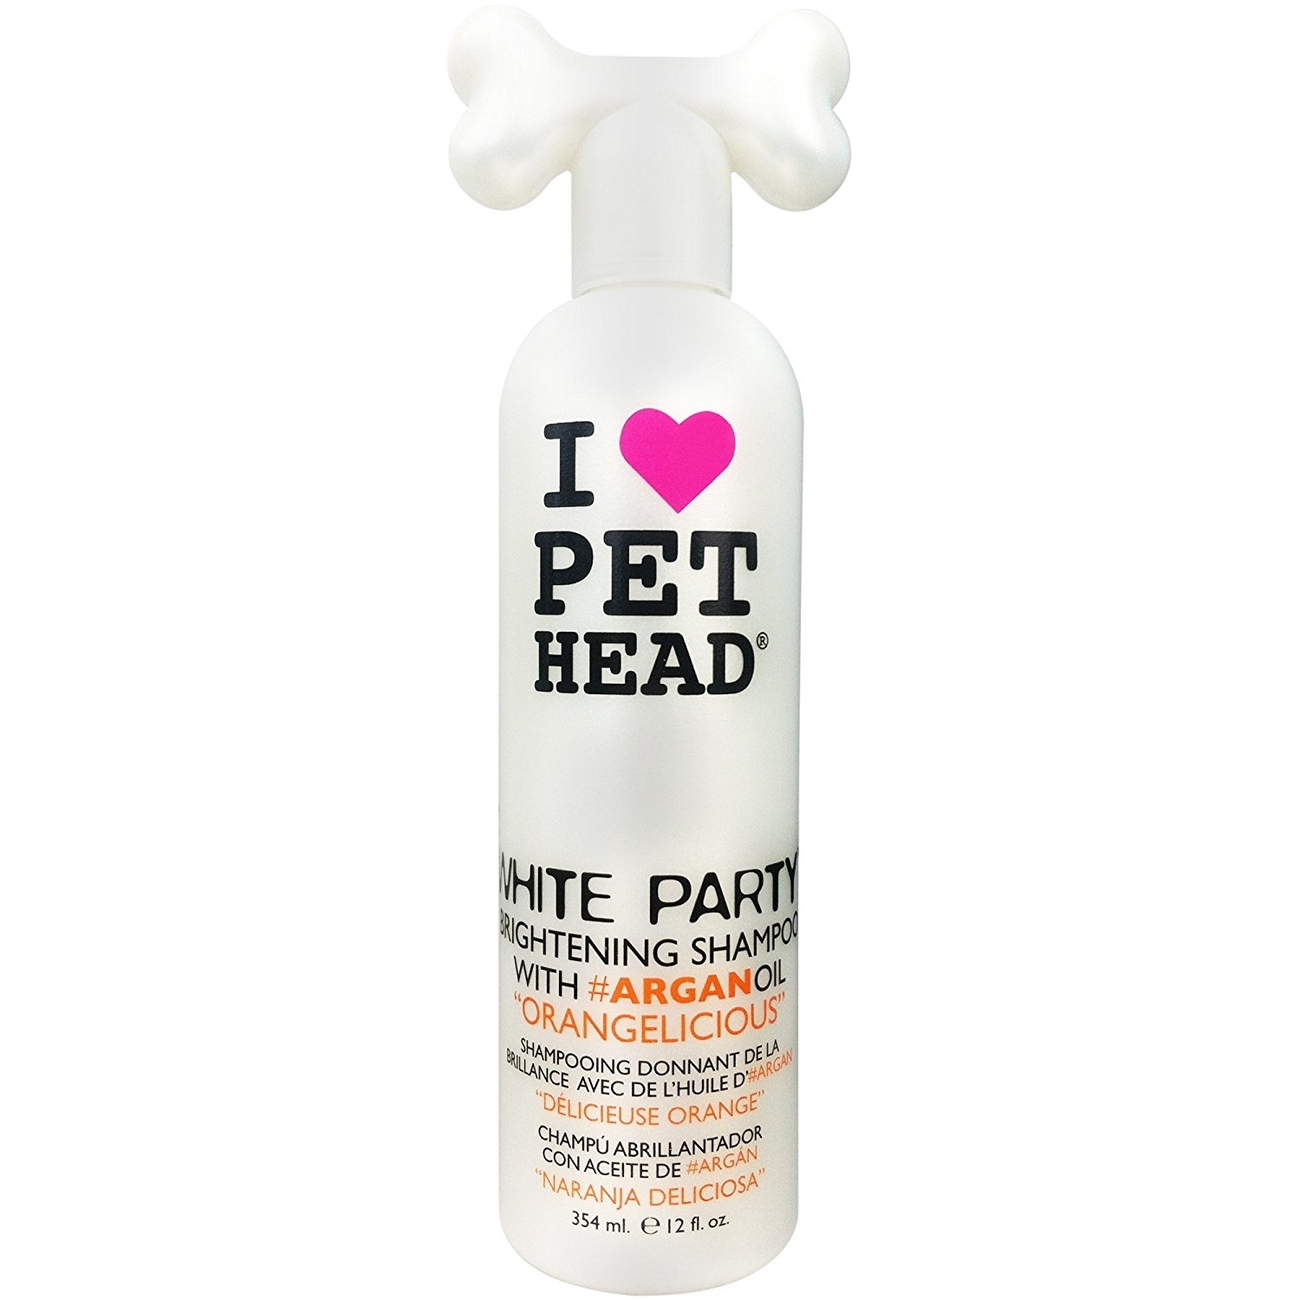 Pet Head White Party Hundeshampoo, 354 ml